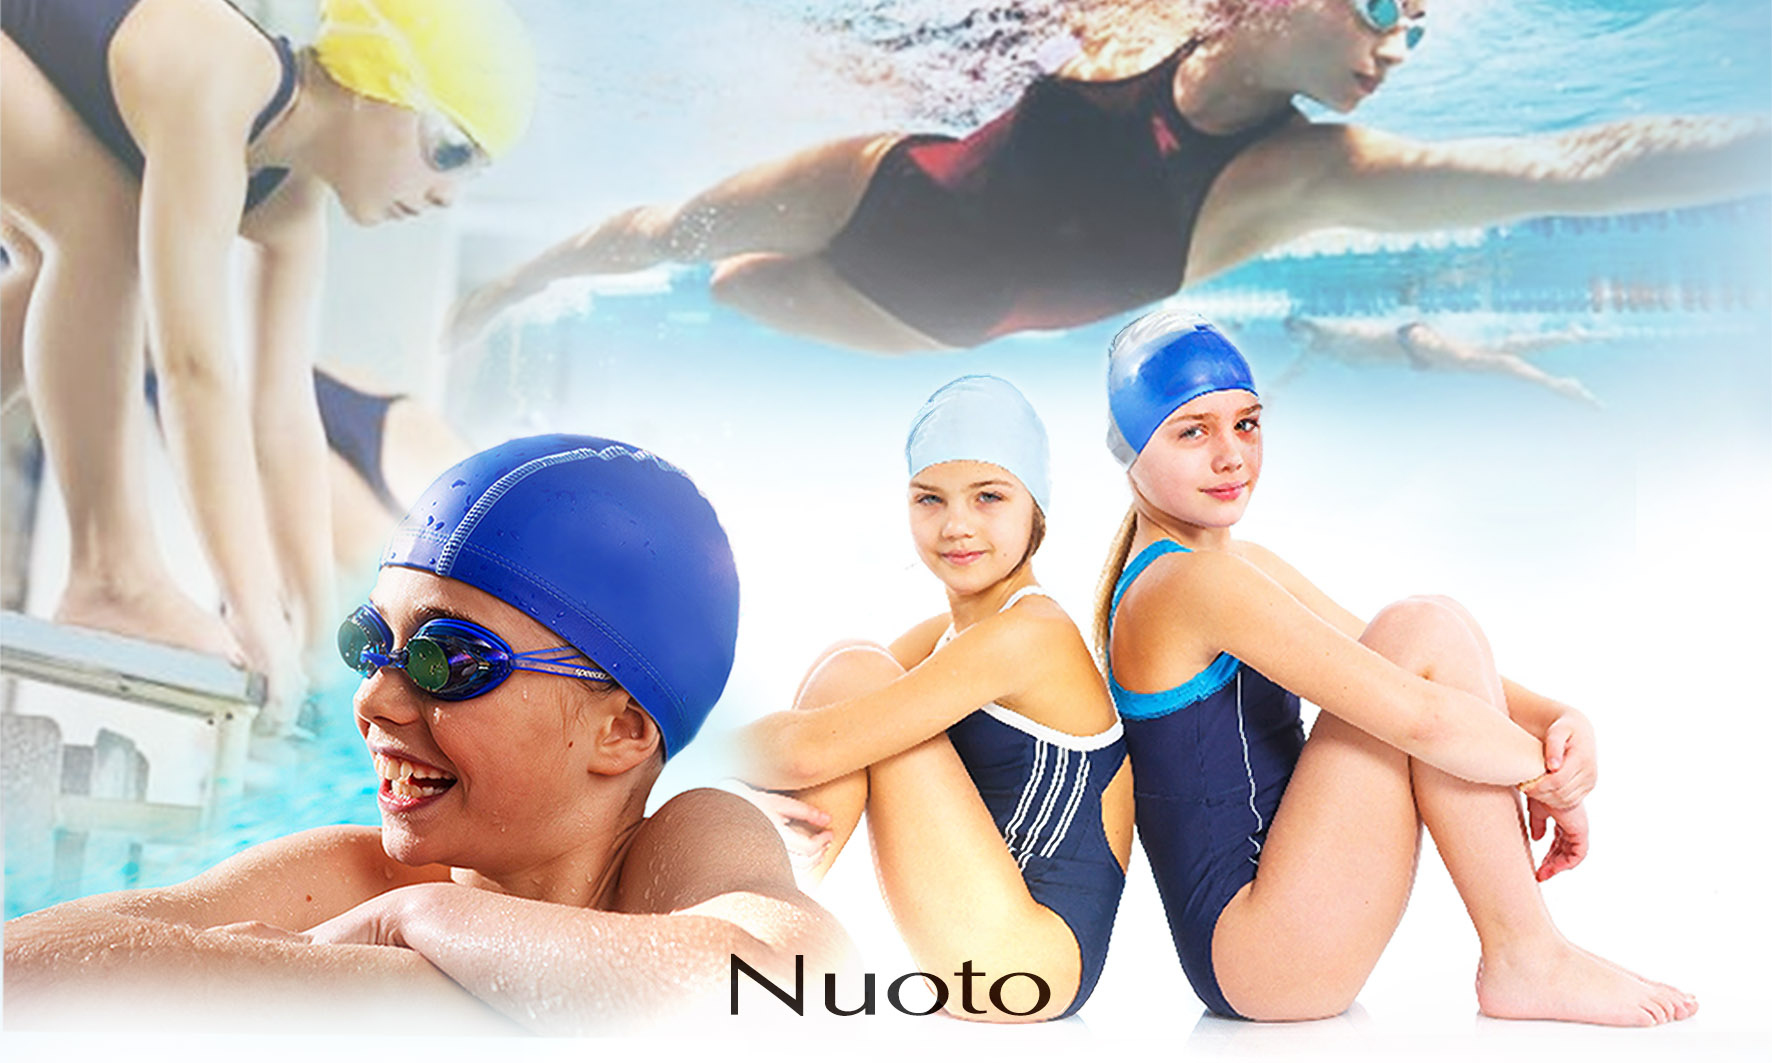 NUOTO_Banner2